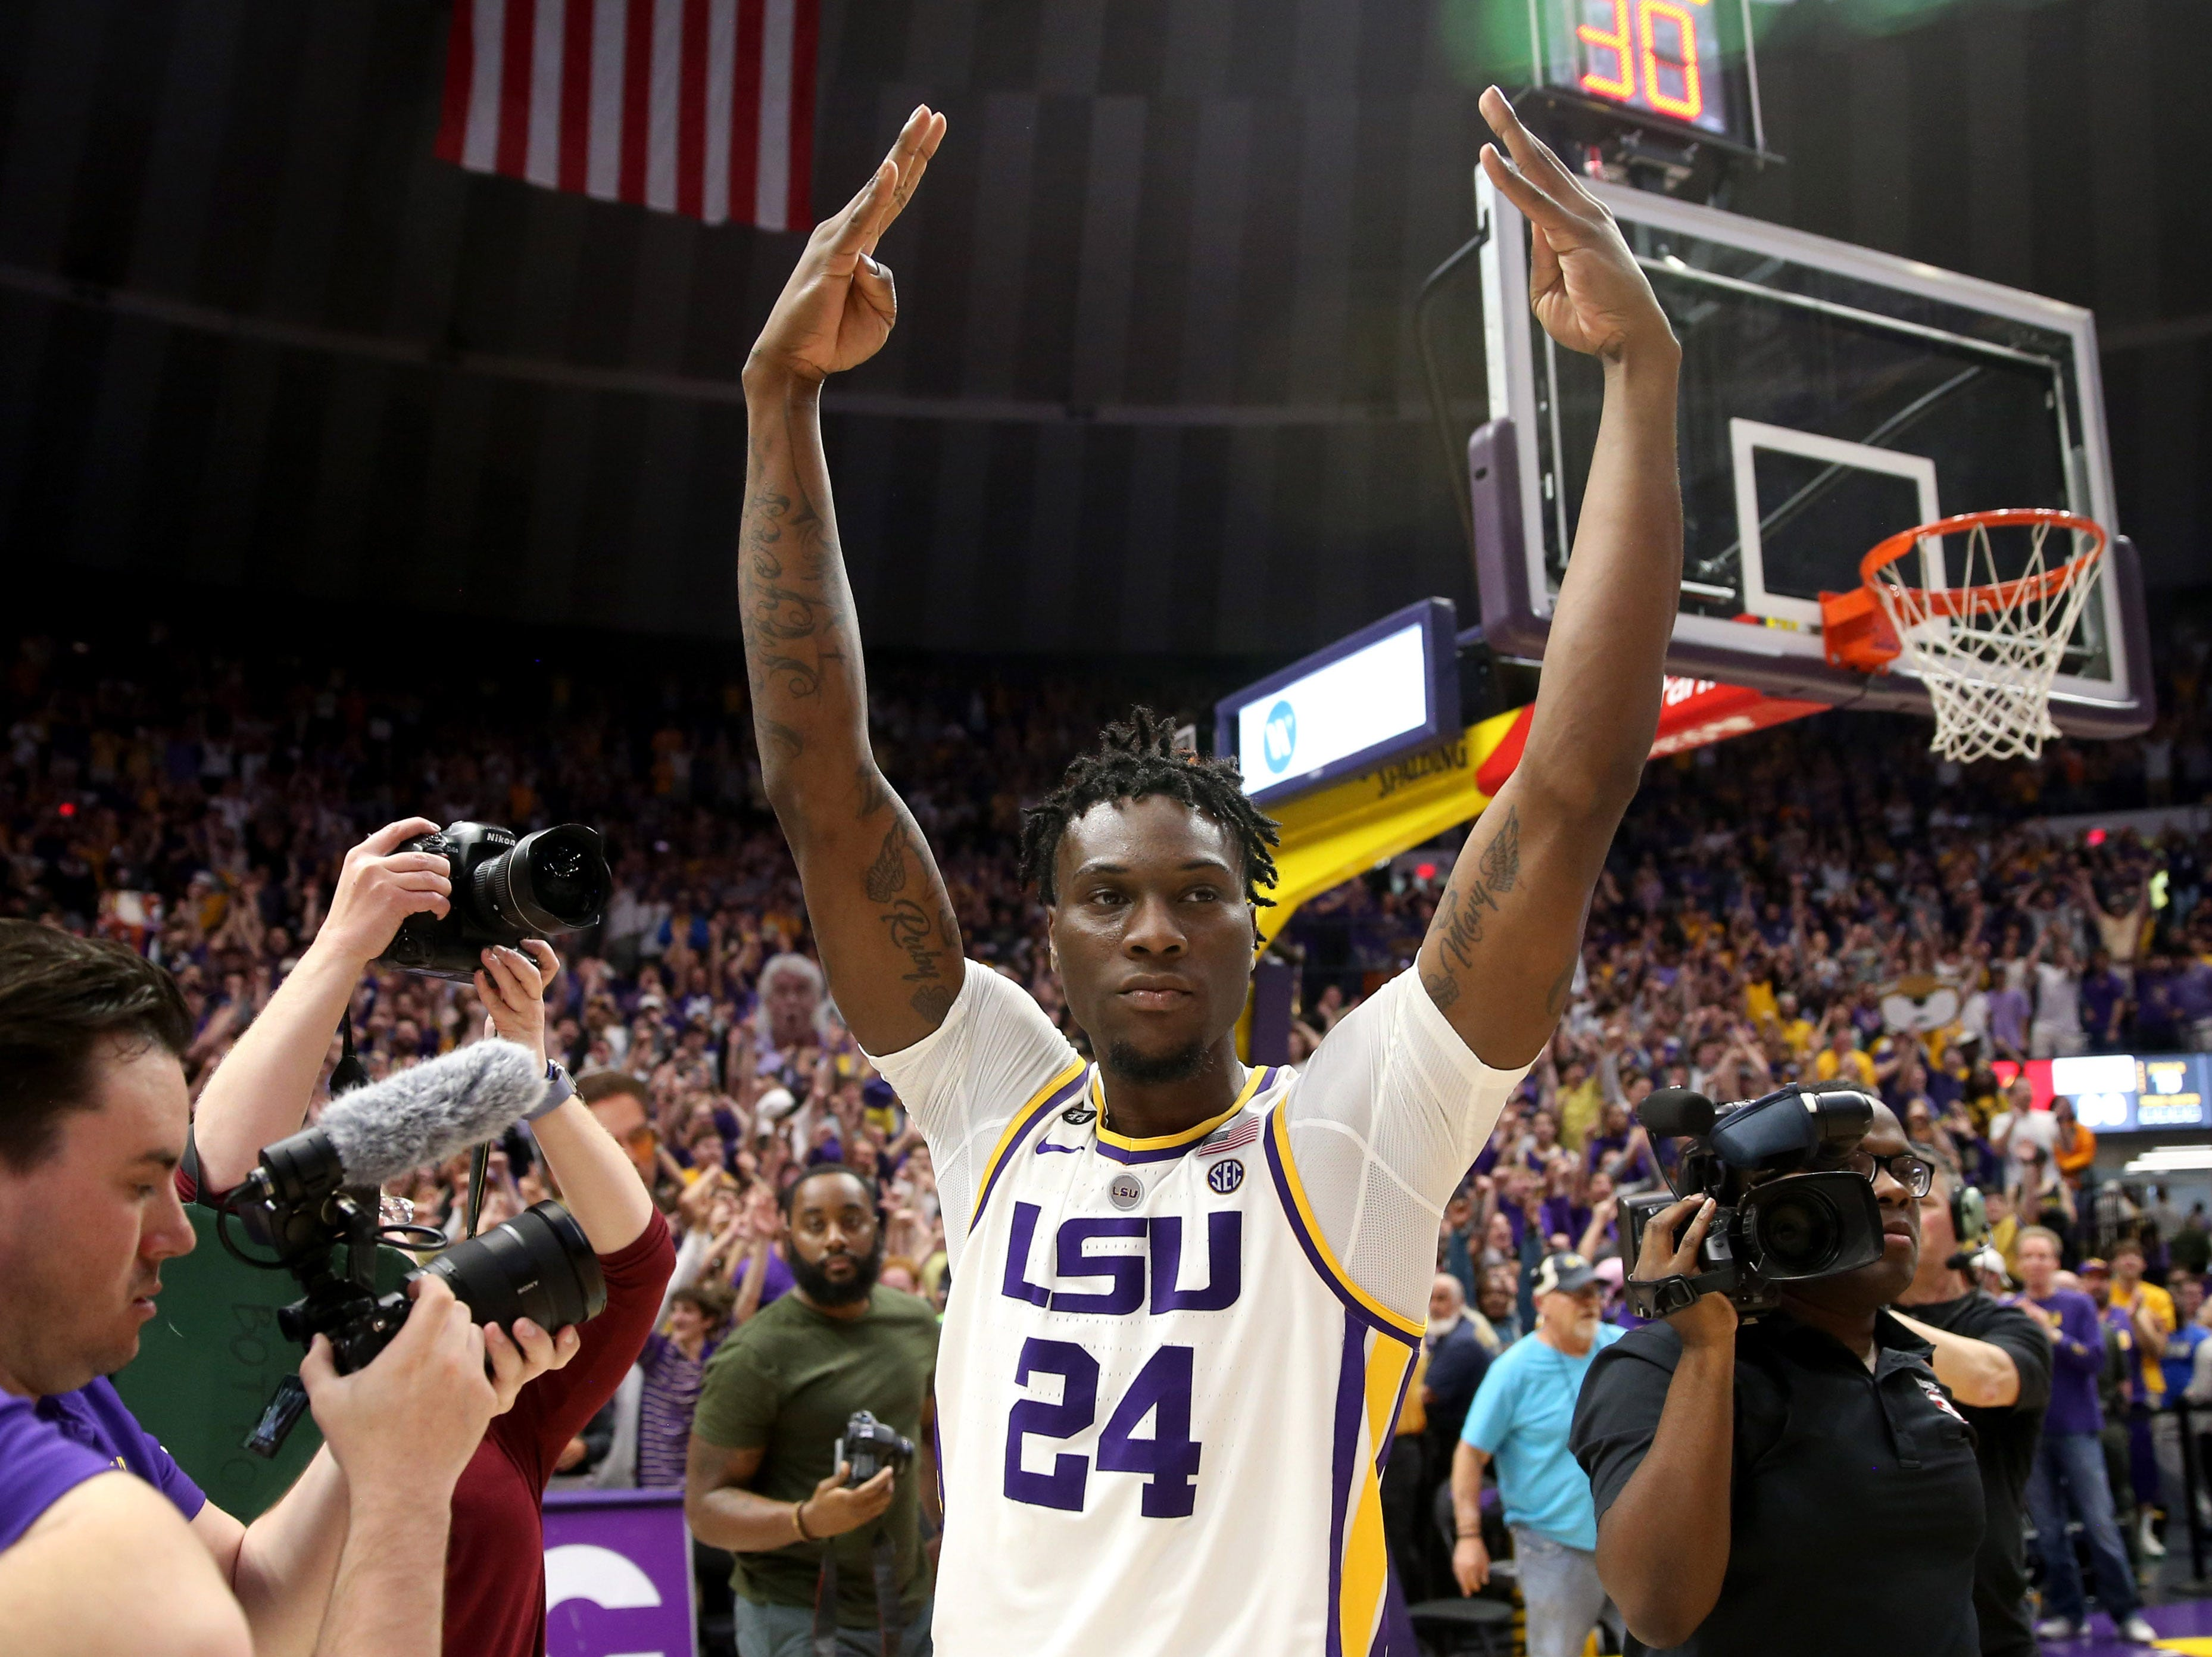 Feb 23, 2019; Baton Rouge, LA, USA; LSU Tigers forward Emmitt Williams (24) celebrates after their game against the Tennessee Volunteers at the Maravich Assembly Center. LSU won, 82-80 in overtime. Mandatory Credit: Chuck Cook-USA TODAY Sports